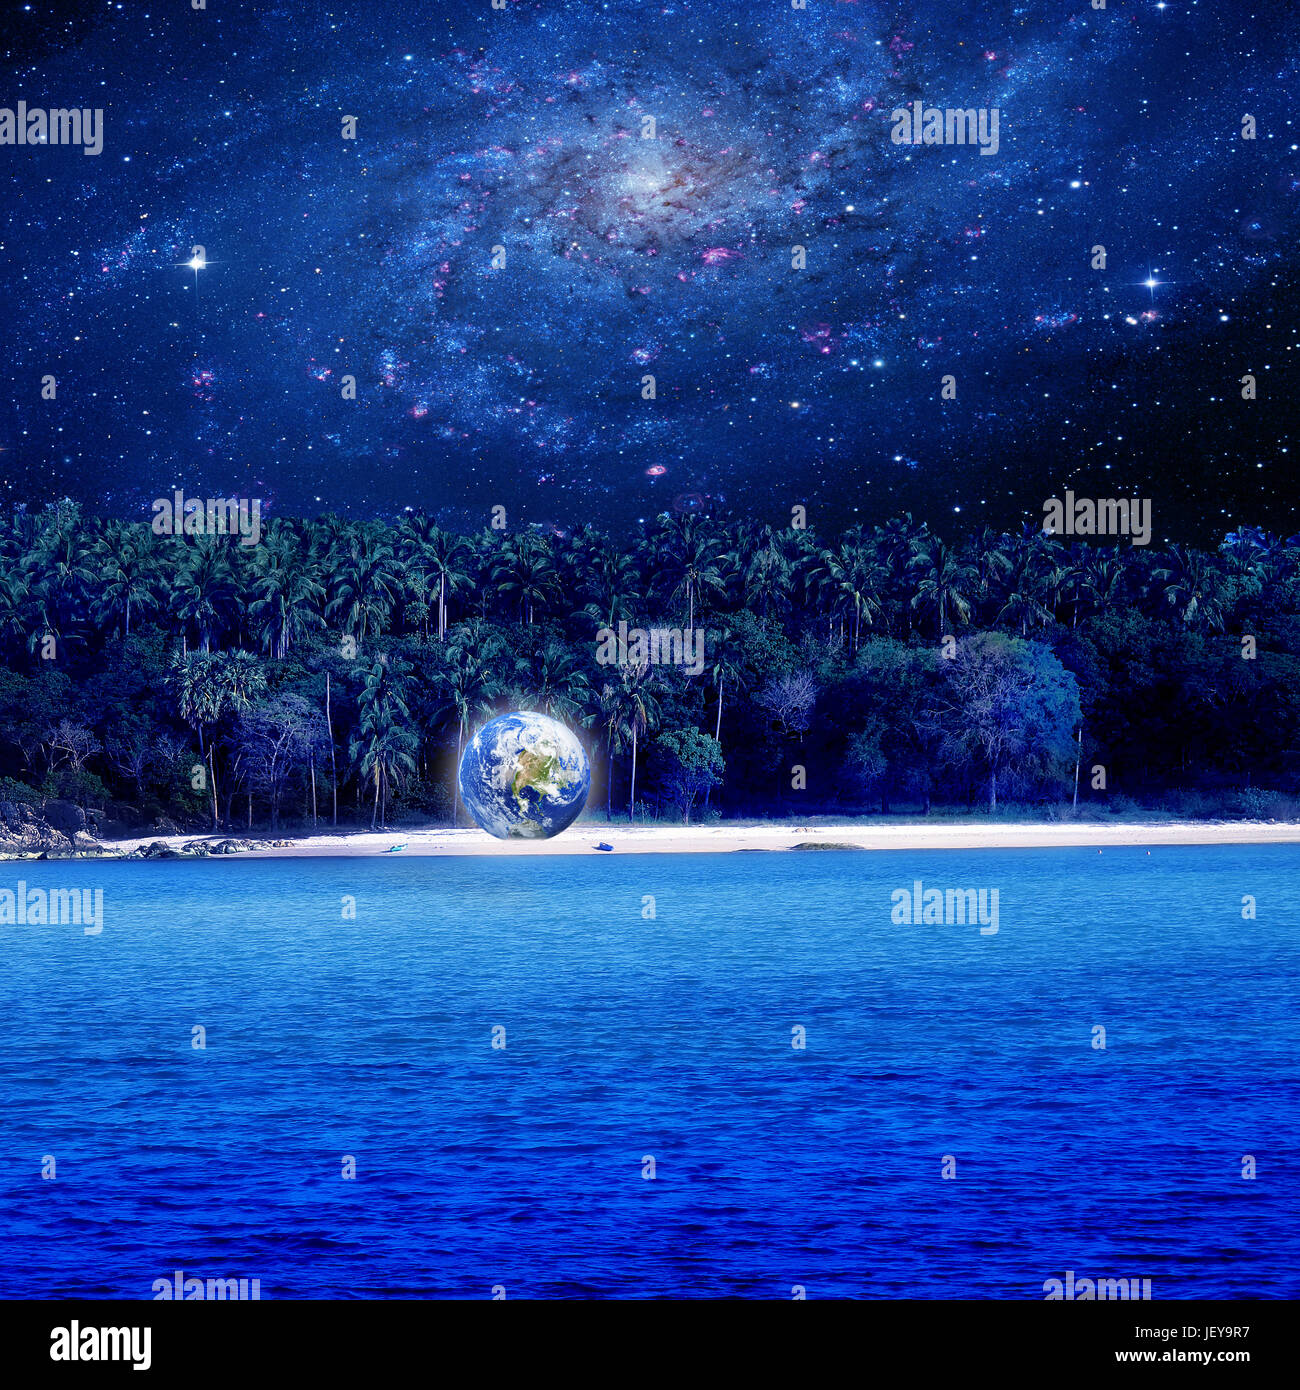 Conceptual Image Of World On Island Over Galaxy Sky Nasa World Map